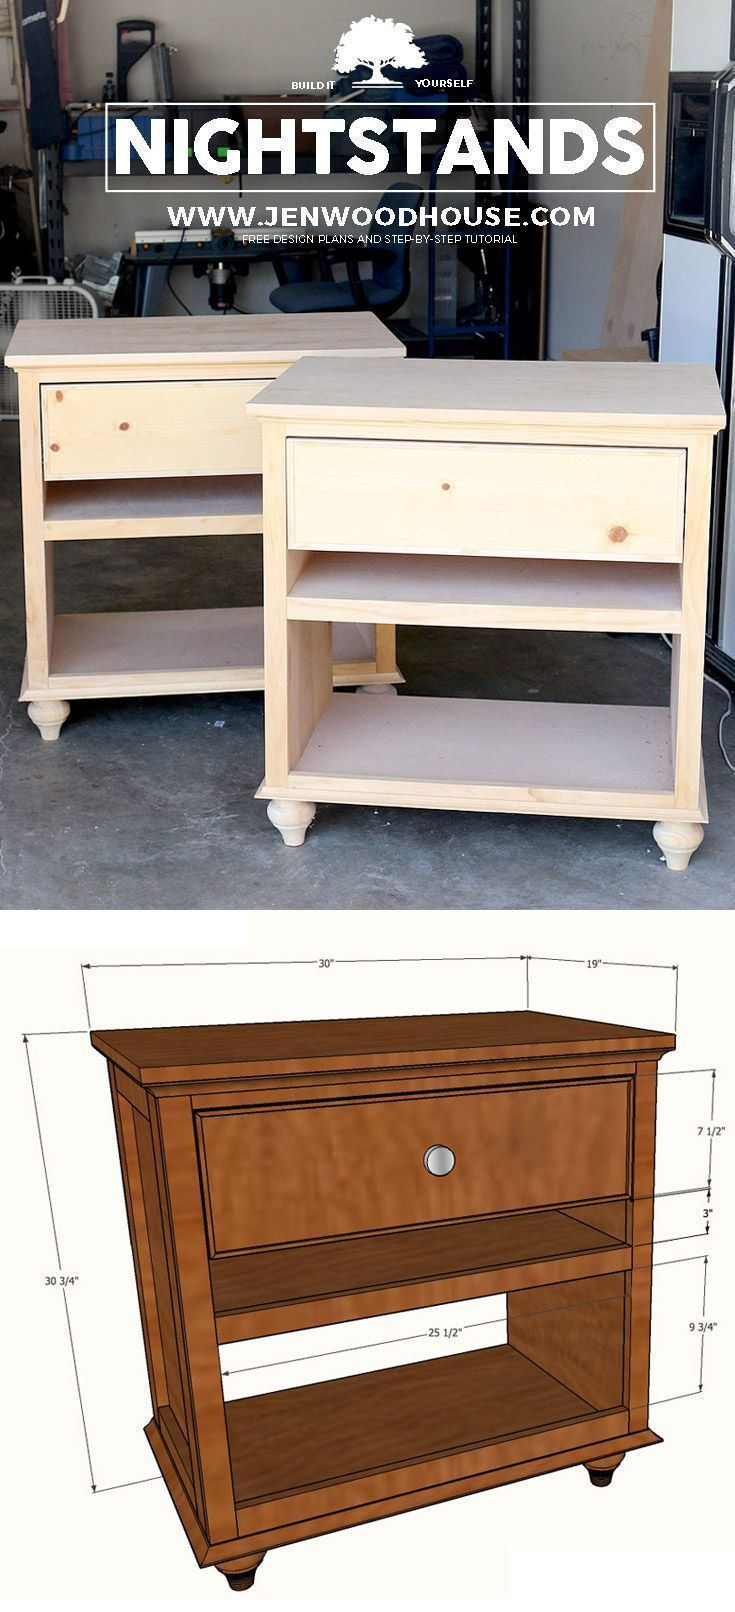 How to build a DIY nightstand - doesn't look too hard to build! Free plans and tutorial #diy #nightstand #bedsidetable #furniture #masterbedroom #build #woodworking #plans #endtable #table #woodworkingprojects